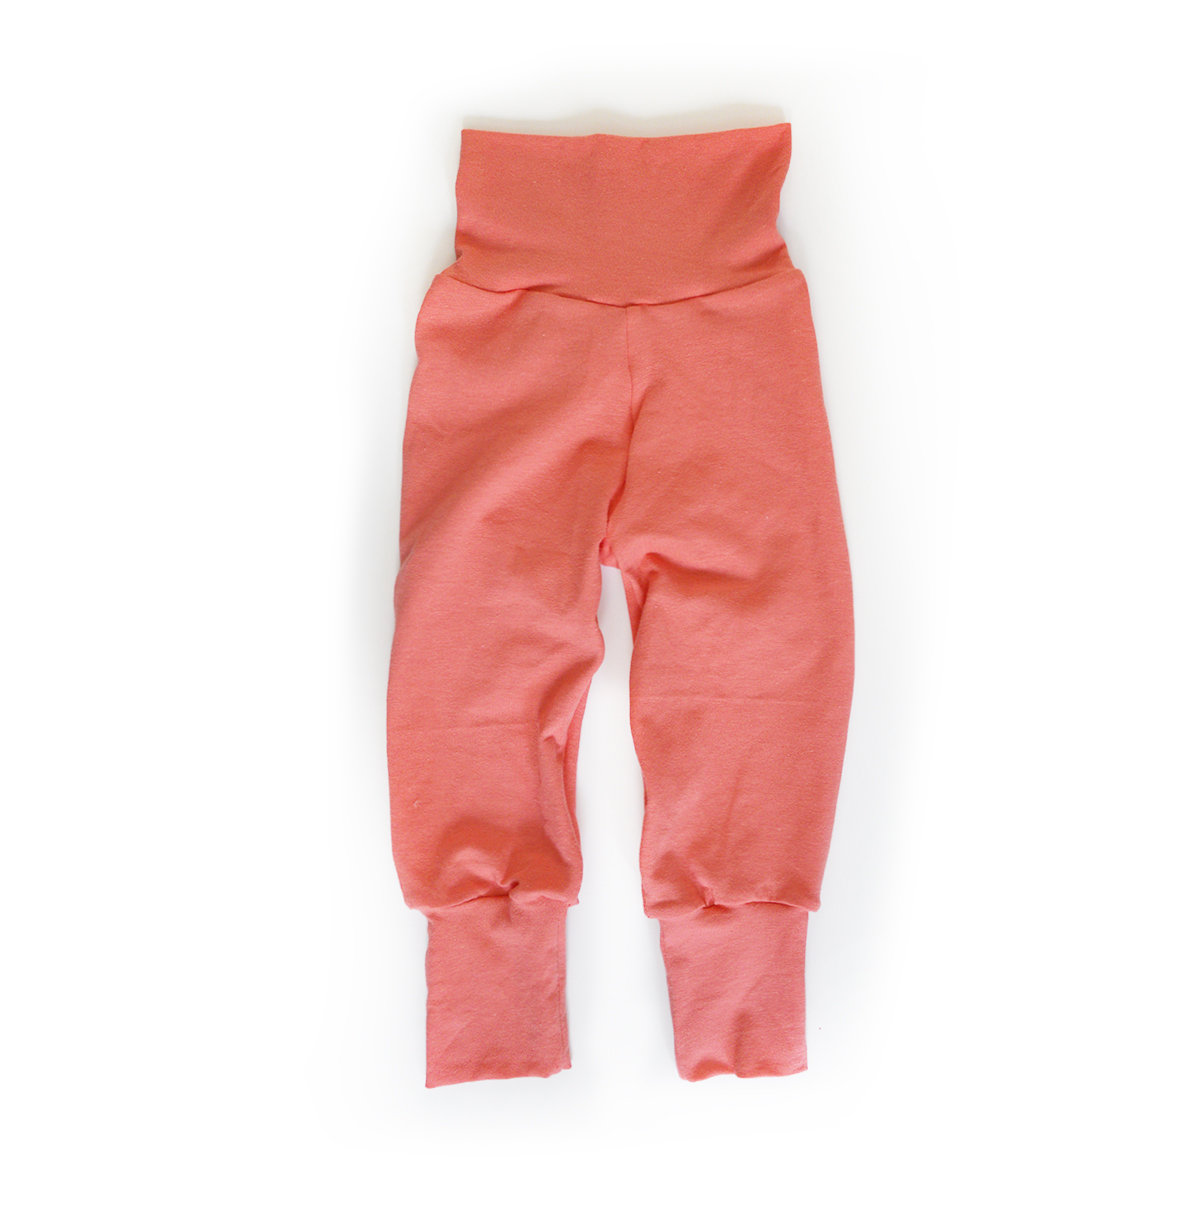 Little Sprout Pants™ Coral - Regular Fit 00481